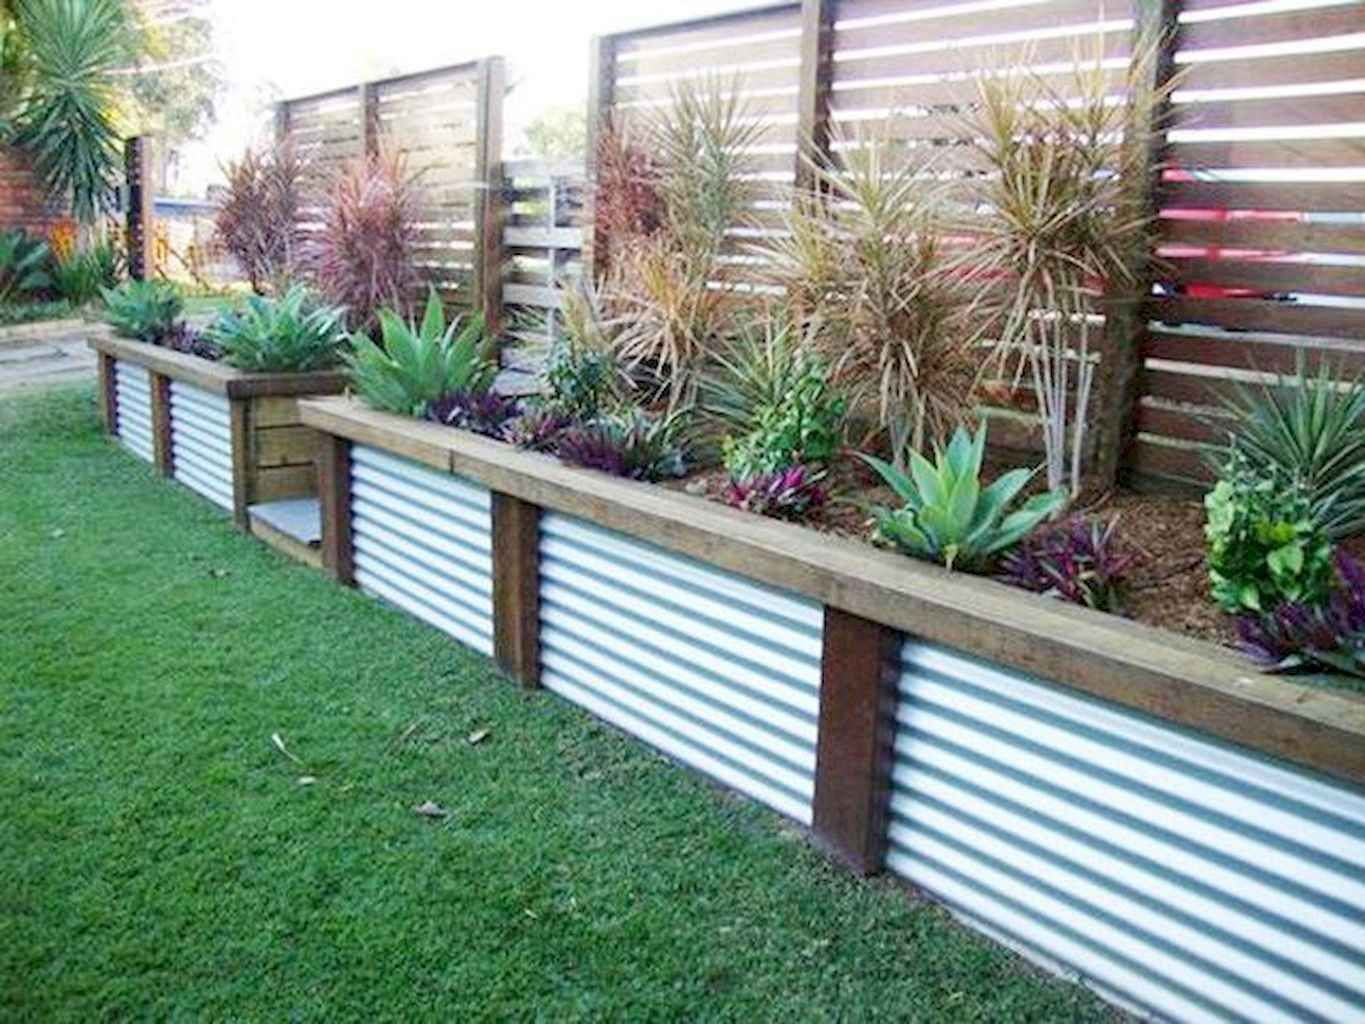 Our Garden Edging Ideas Give Texture And Definition To Your Landscaping Sometimes It S Hard To Find Landscape Edg Backyard Fences Fence Design Backyard Garden